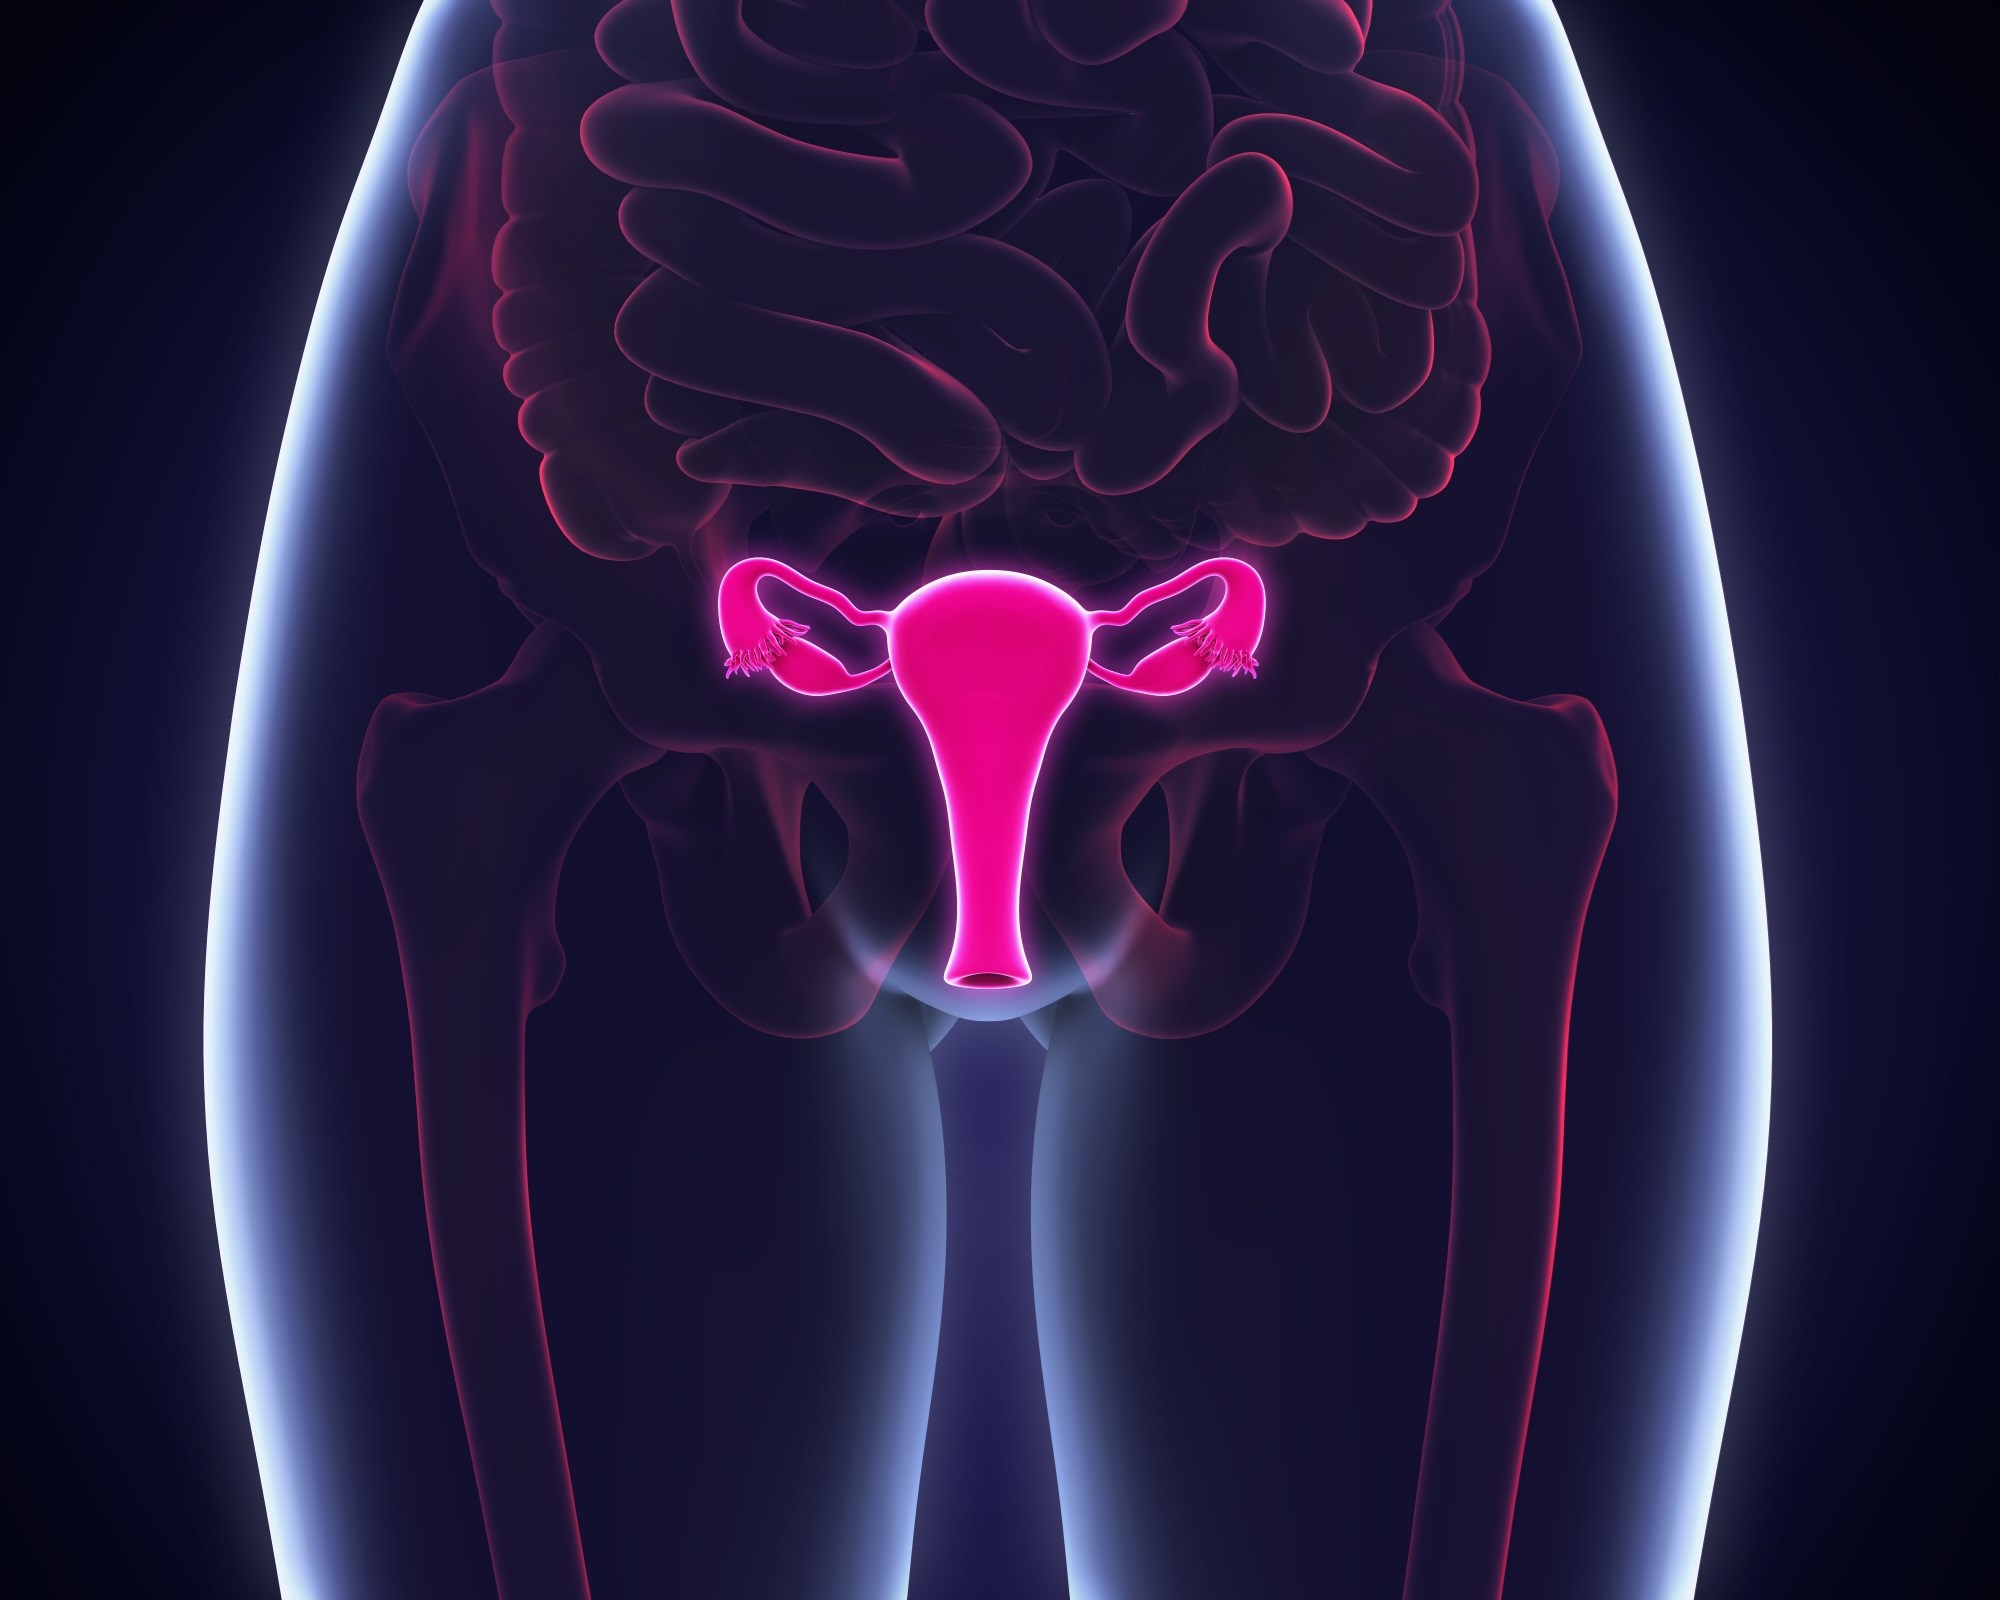 Absolute uterine factor infertility affects approximately 1.5 million women worldwide.